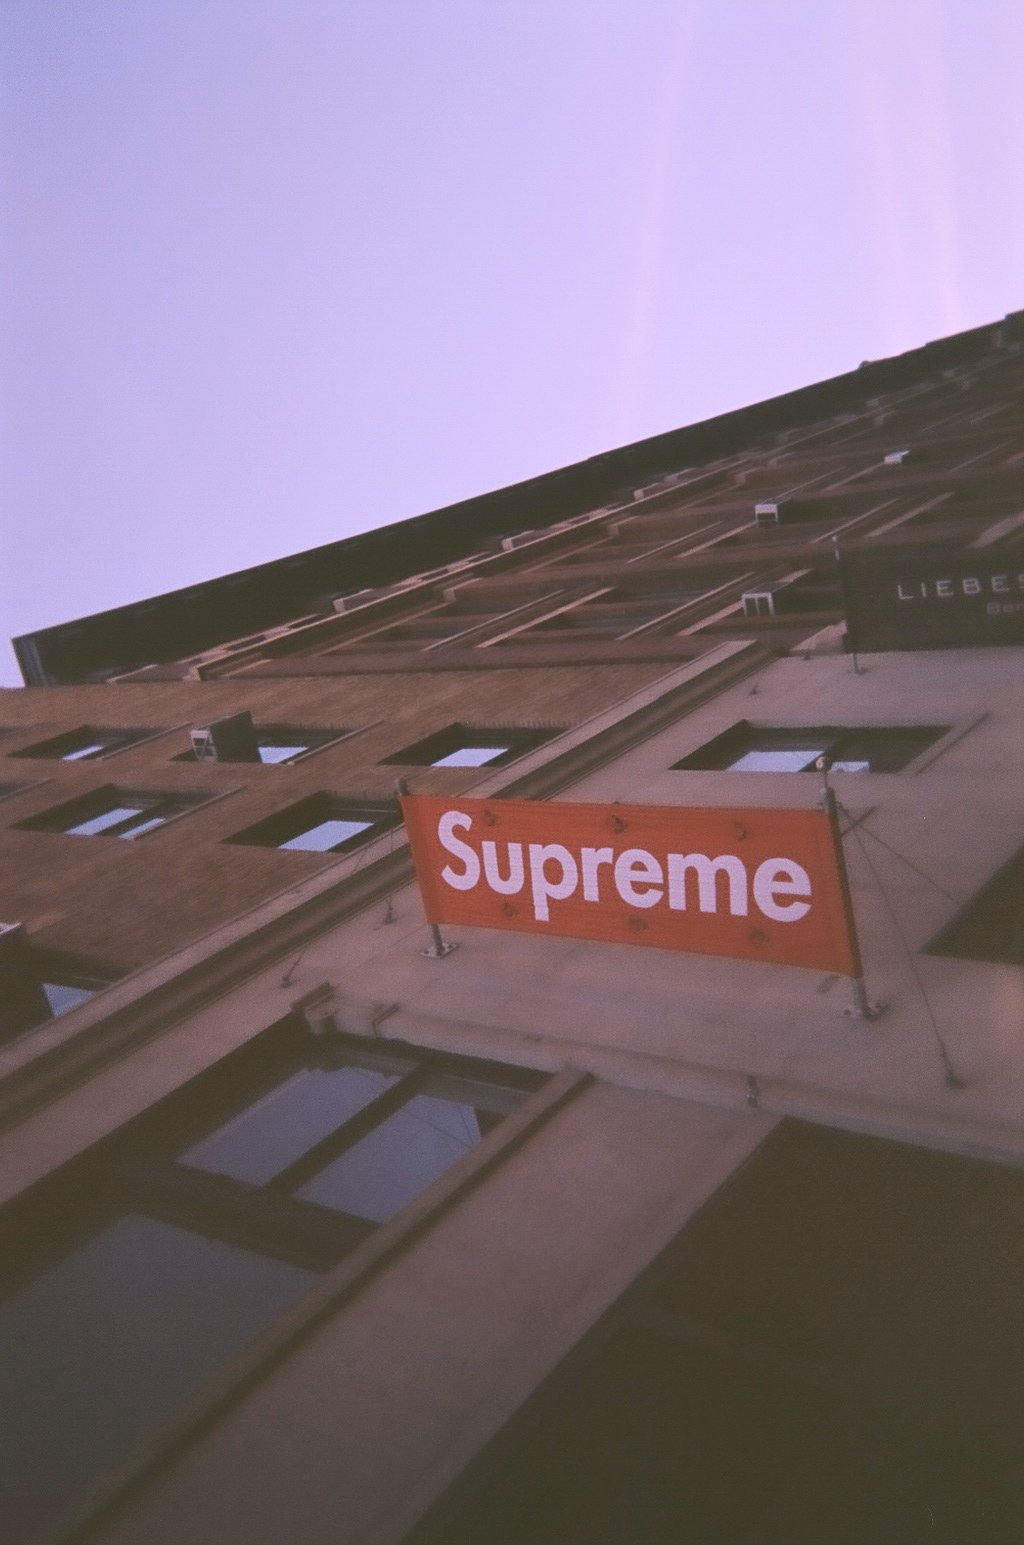 Supreme Wallpaper Iphone 5 To the supreme flagship on 1024x1545